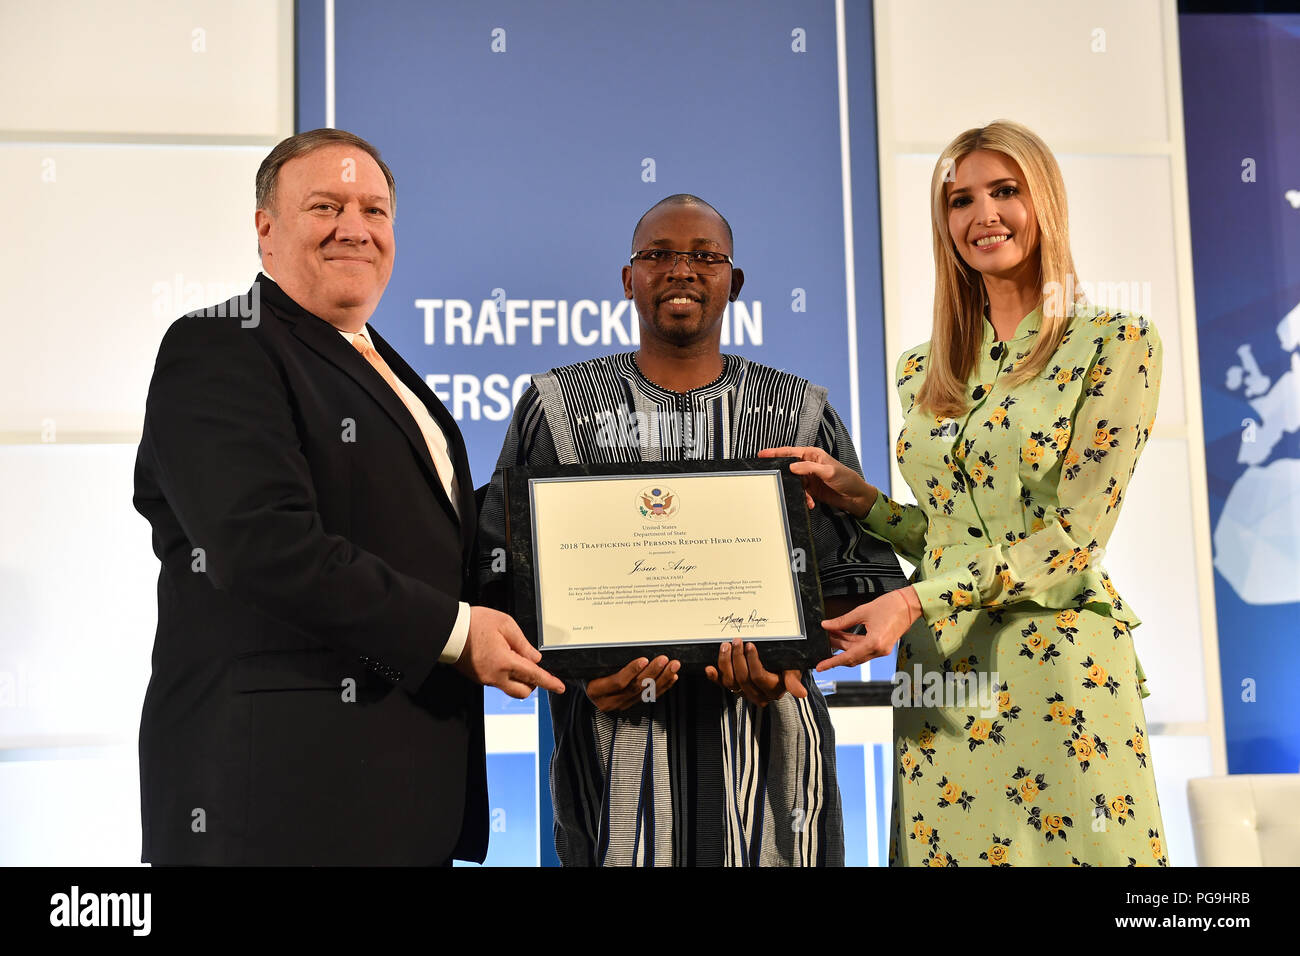 U.S. Secretary of State Mike Pompeo, joined by Advisor to the President Ivanka Trump, presents a certificate to 2018 'TIP Report Hero' Josue Ango of Burkina Faso. Ango is one of ten individuals from around the world who was recognized for his efforts to fight against human trafficking, at the U.S. Department of State on June 28, 2018. - Stock Image